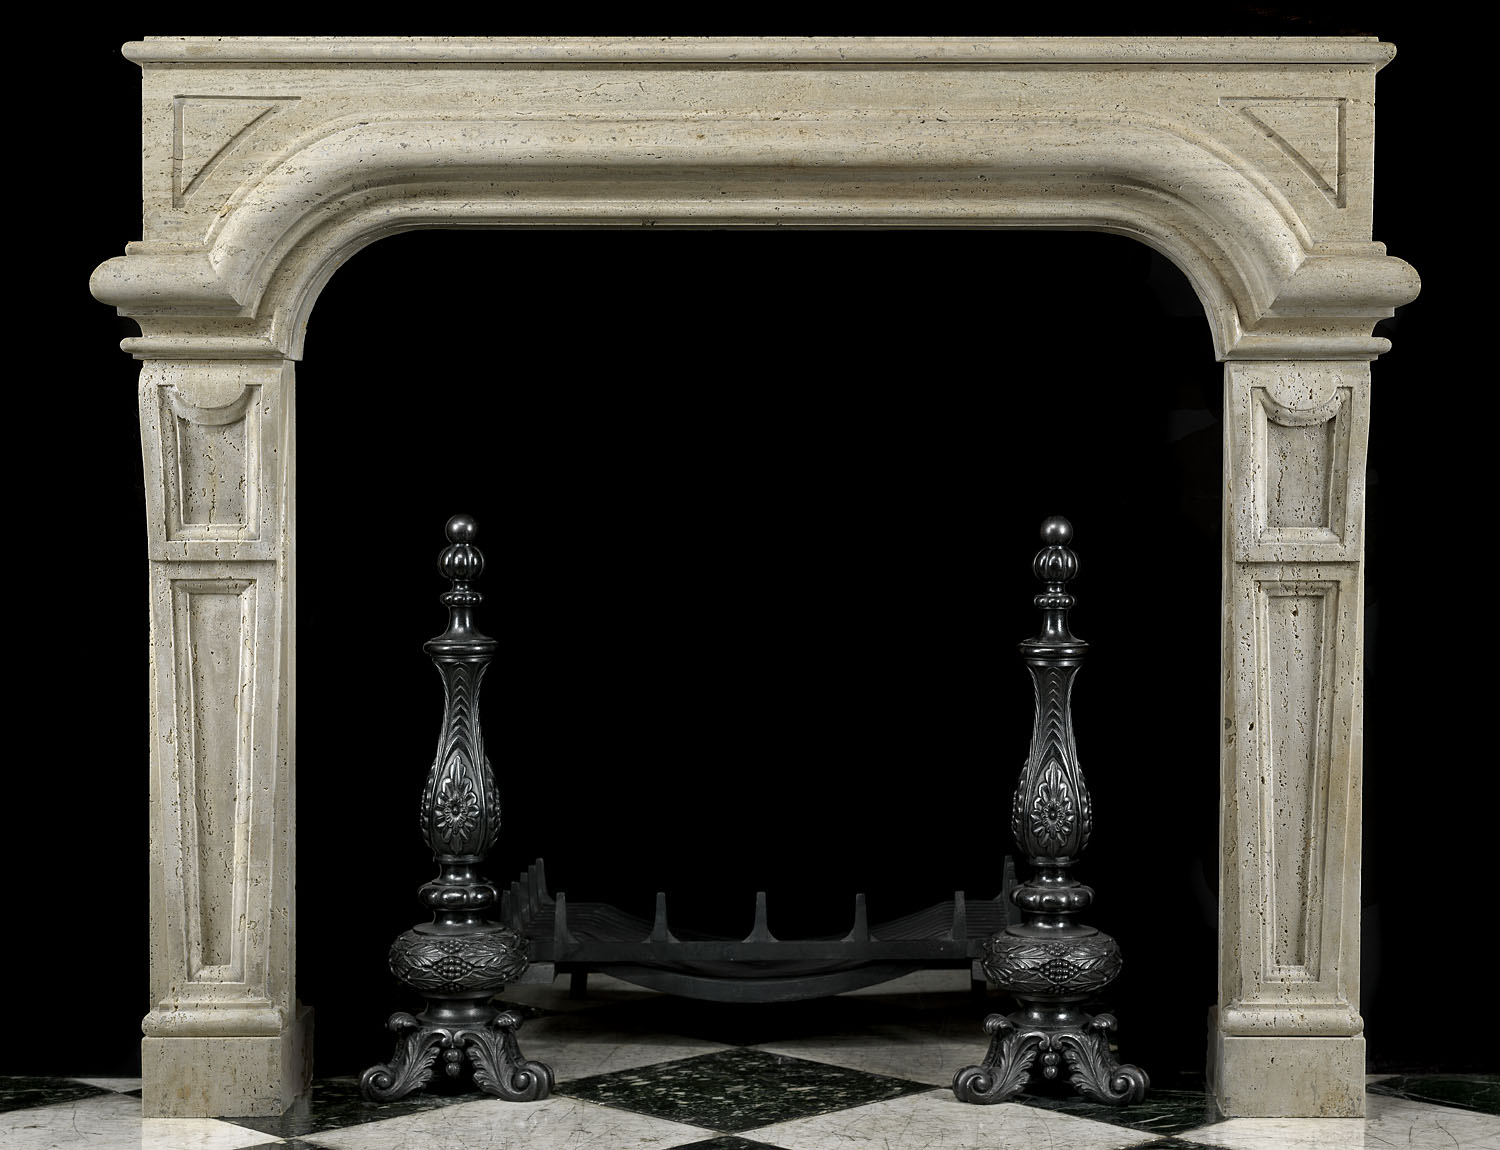 An early 20th century Italian Baroque chimneypiece carved in Travertine stone.